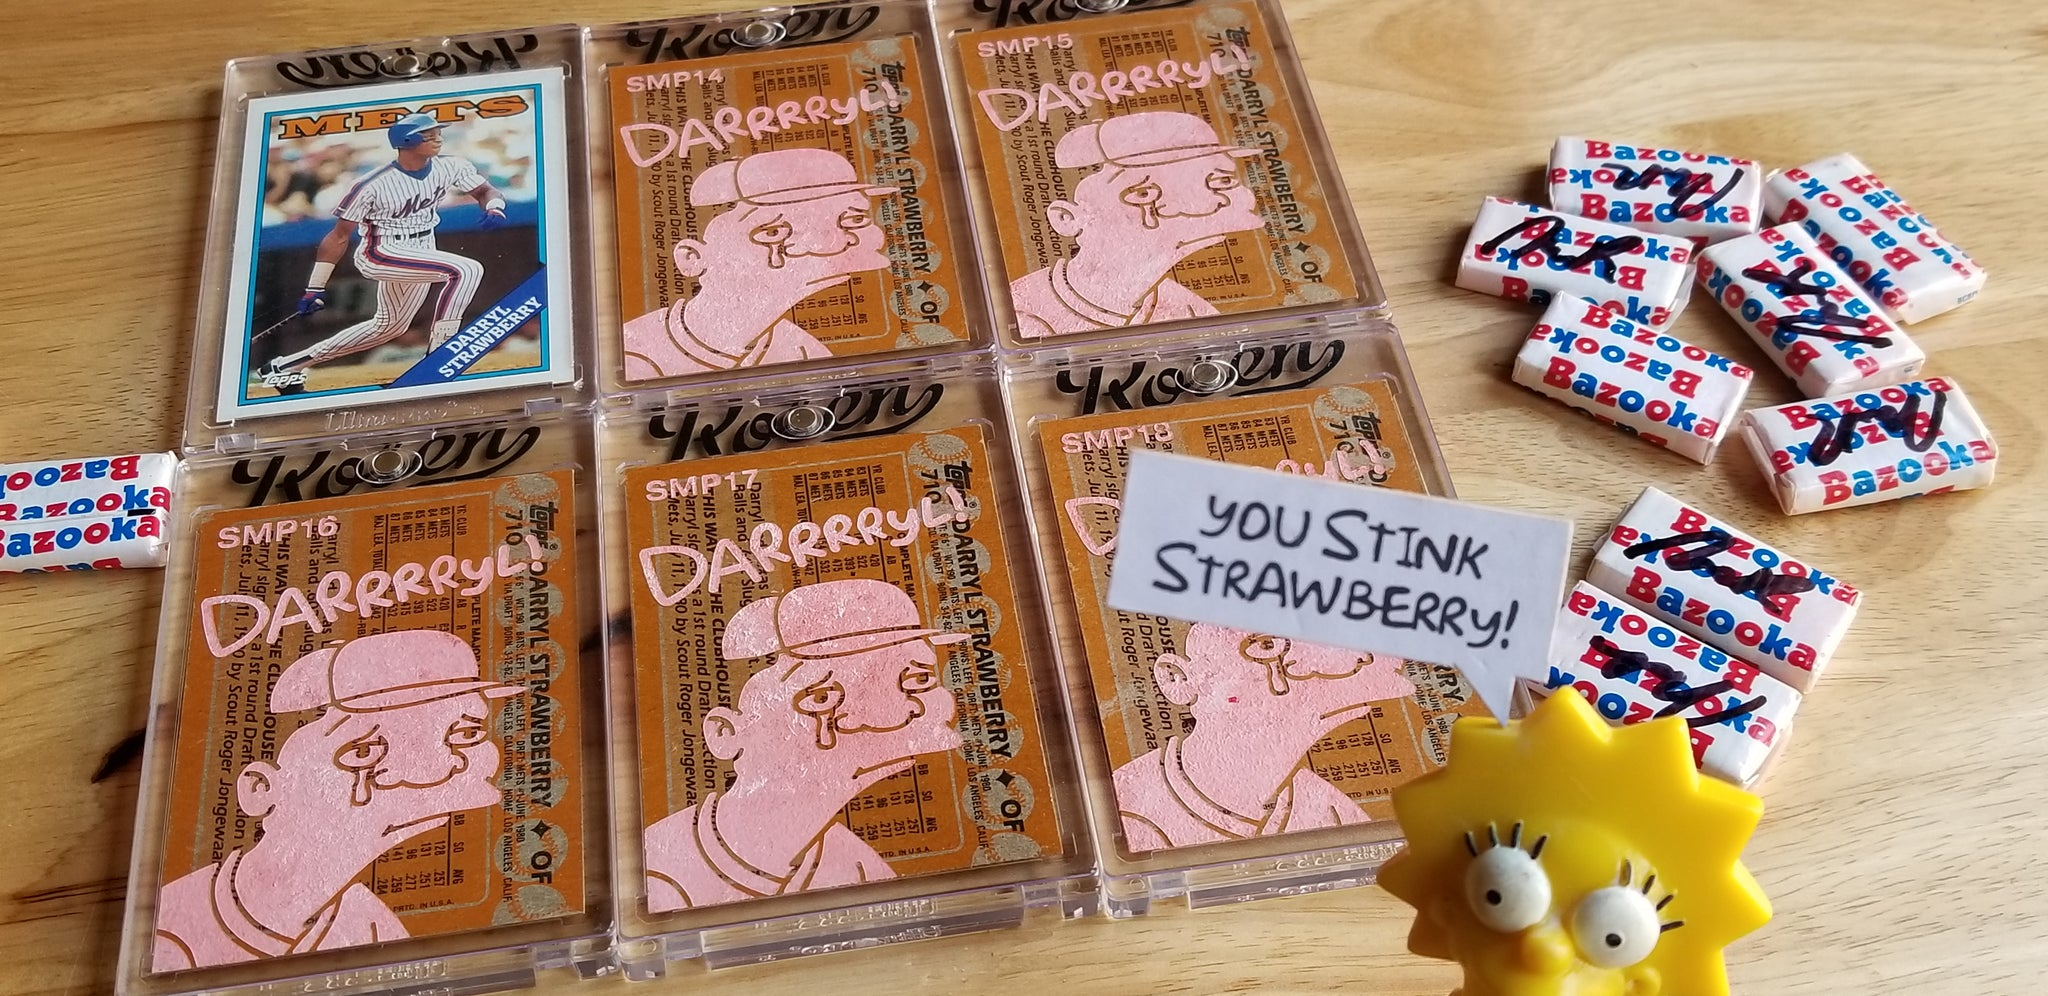 Baseball card art by Matt Rosen - Gum Stick Collector Cards - Darrrryl